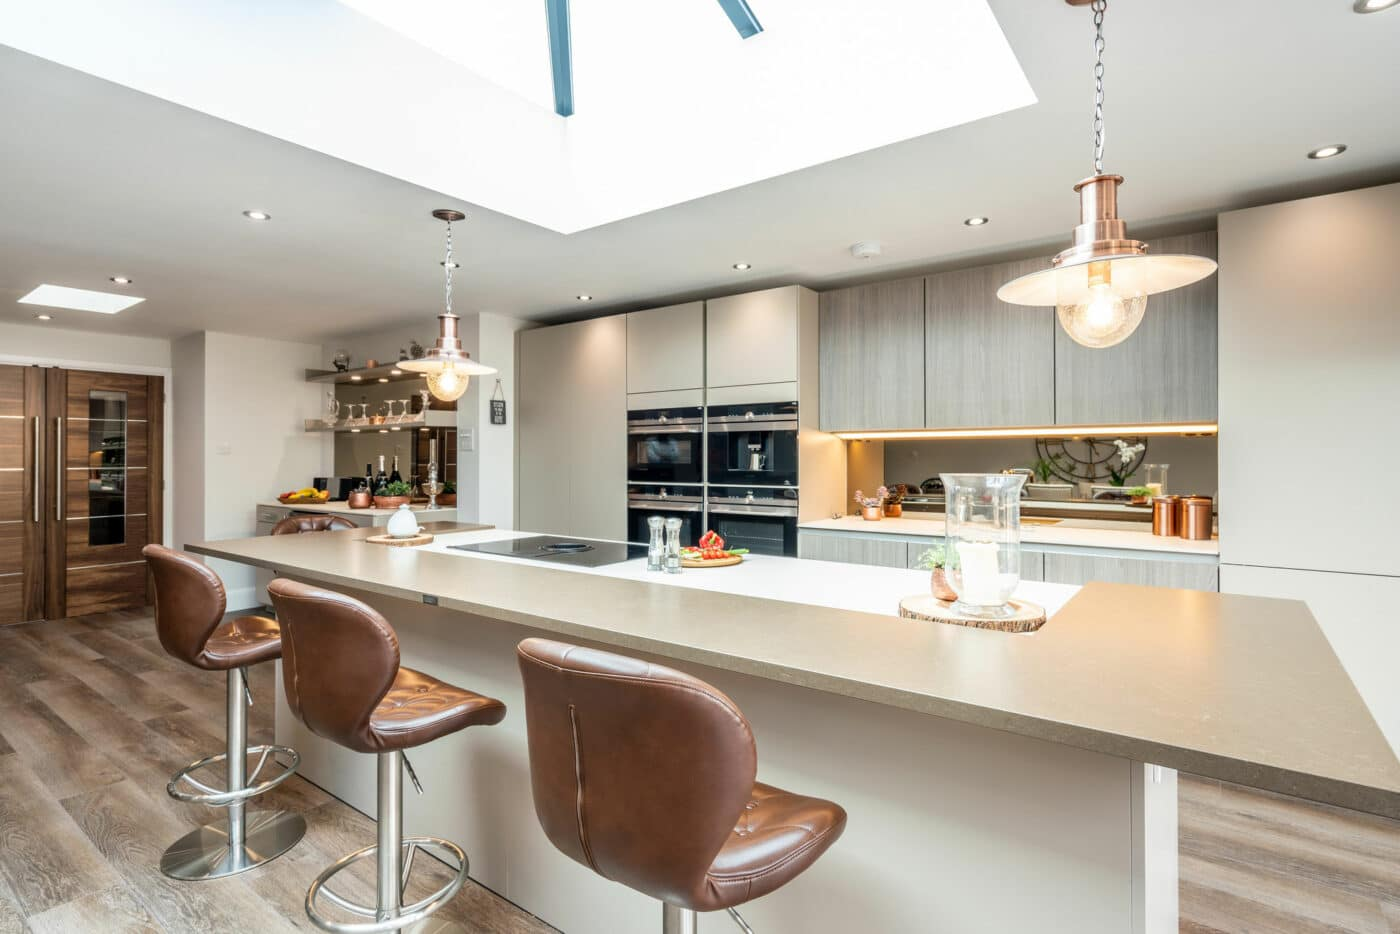 Image of Myers Touch Daniels Kitchen 01038 ZF 2442 14358 1 034 in Accueil Cosentino - Cosentino